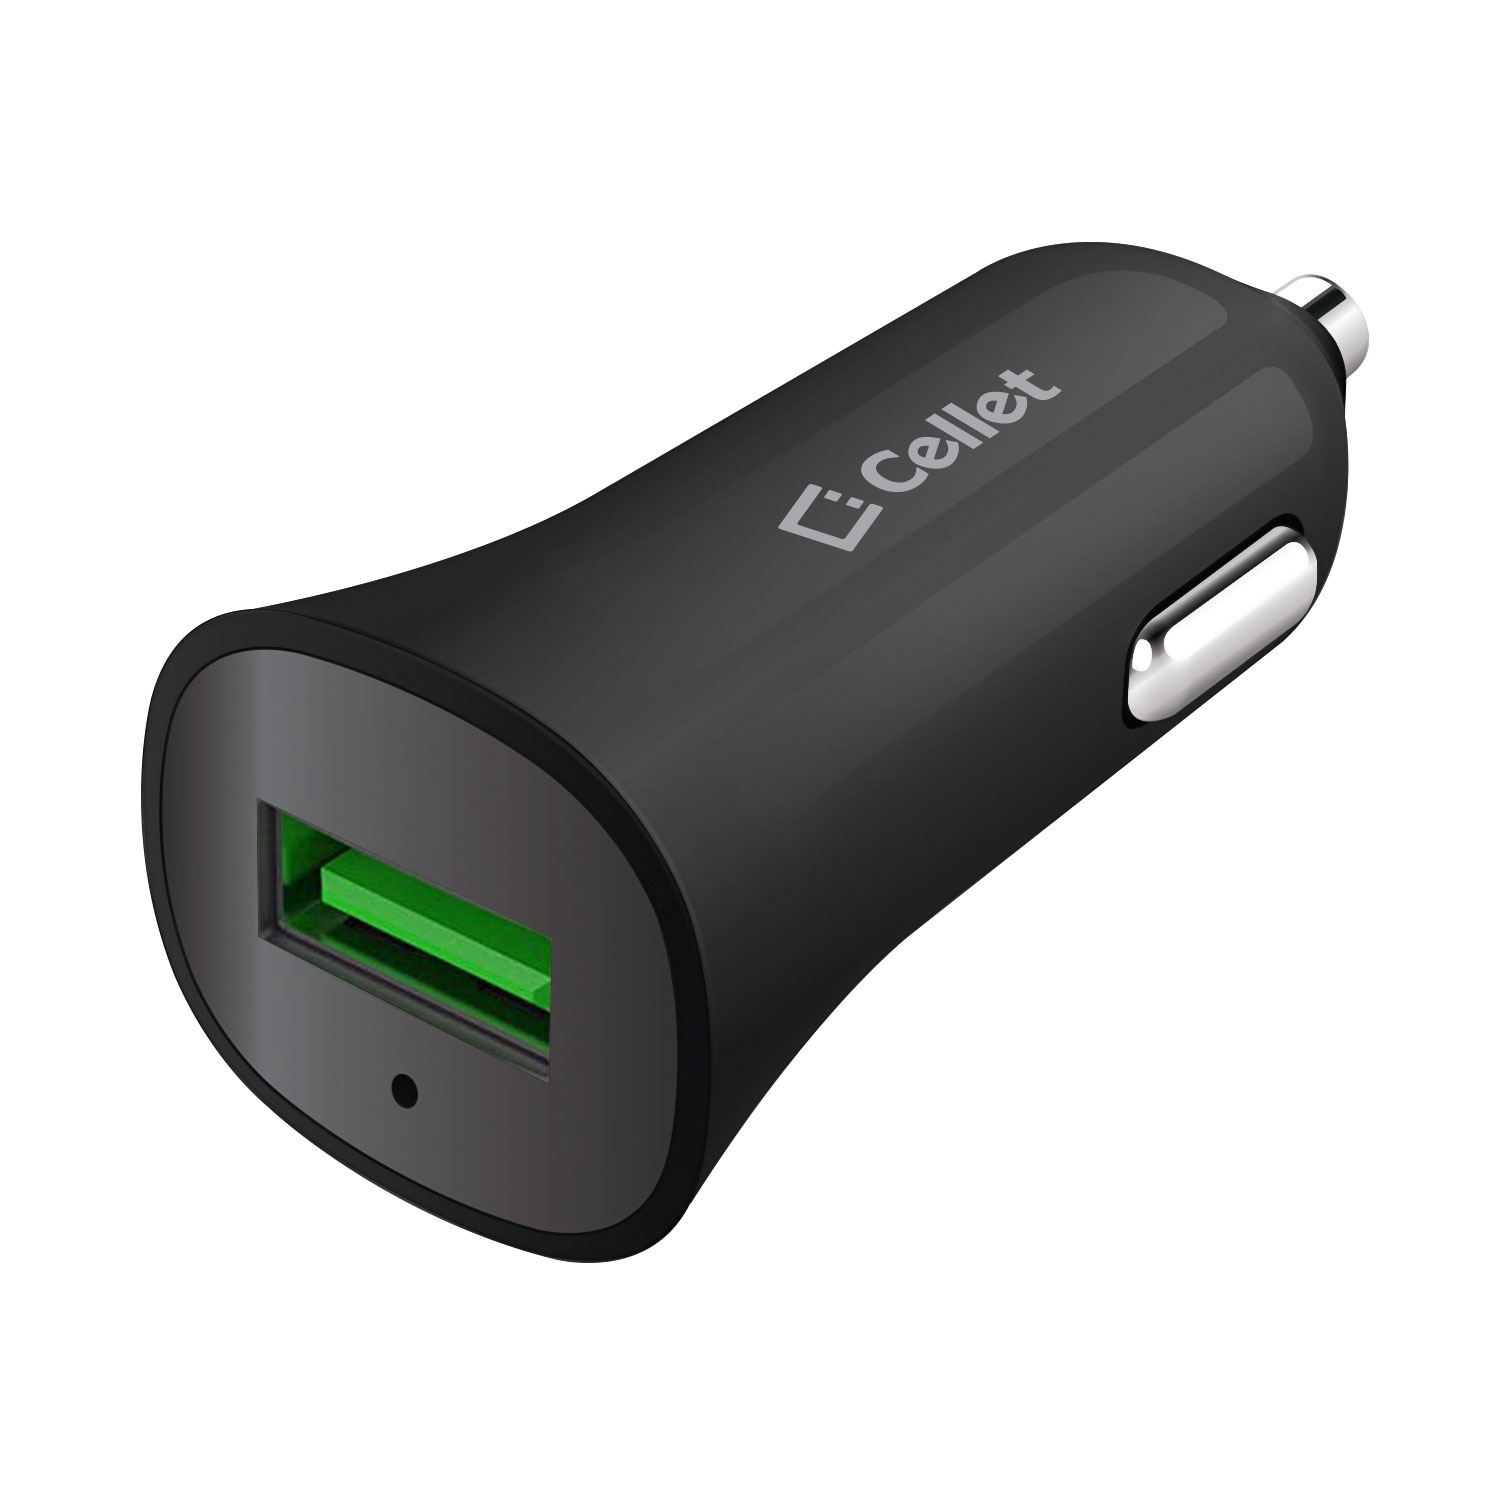 Car Charger Quick Charge 3.0 Black 3.3ft